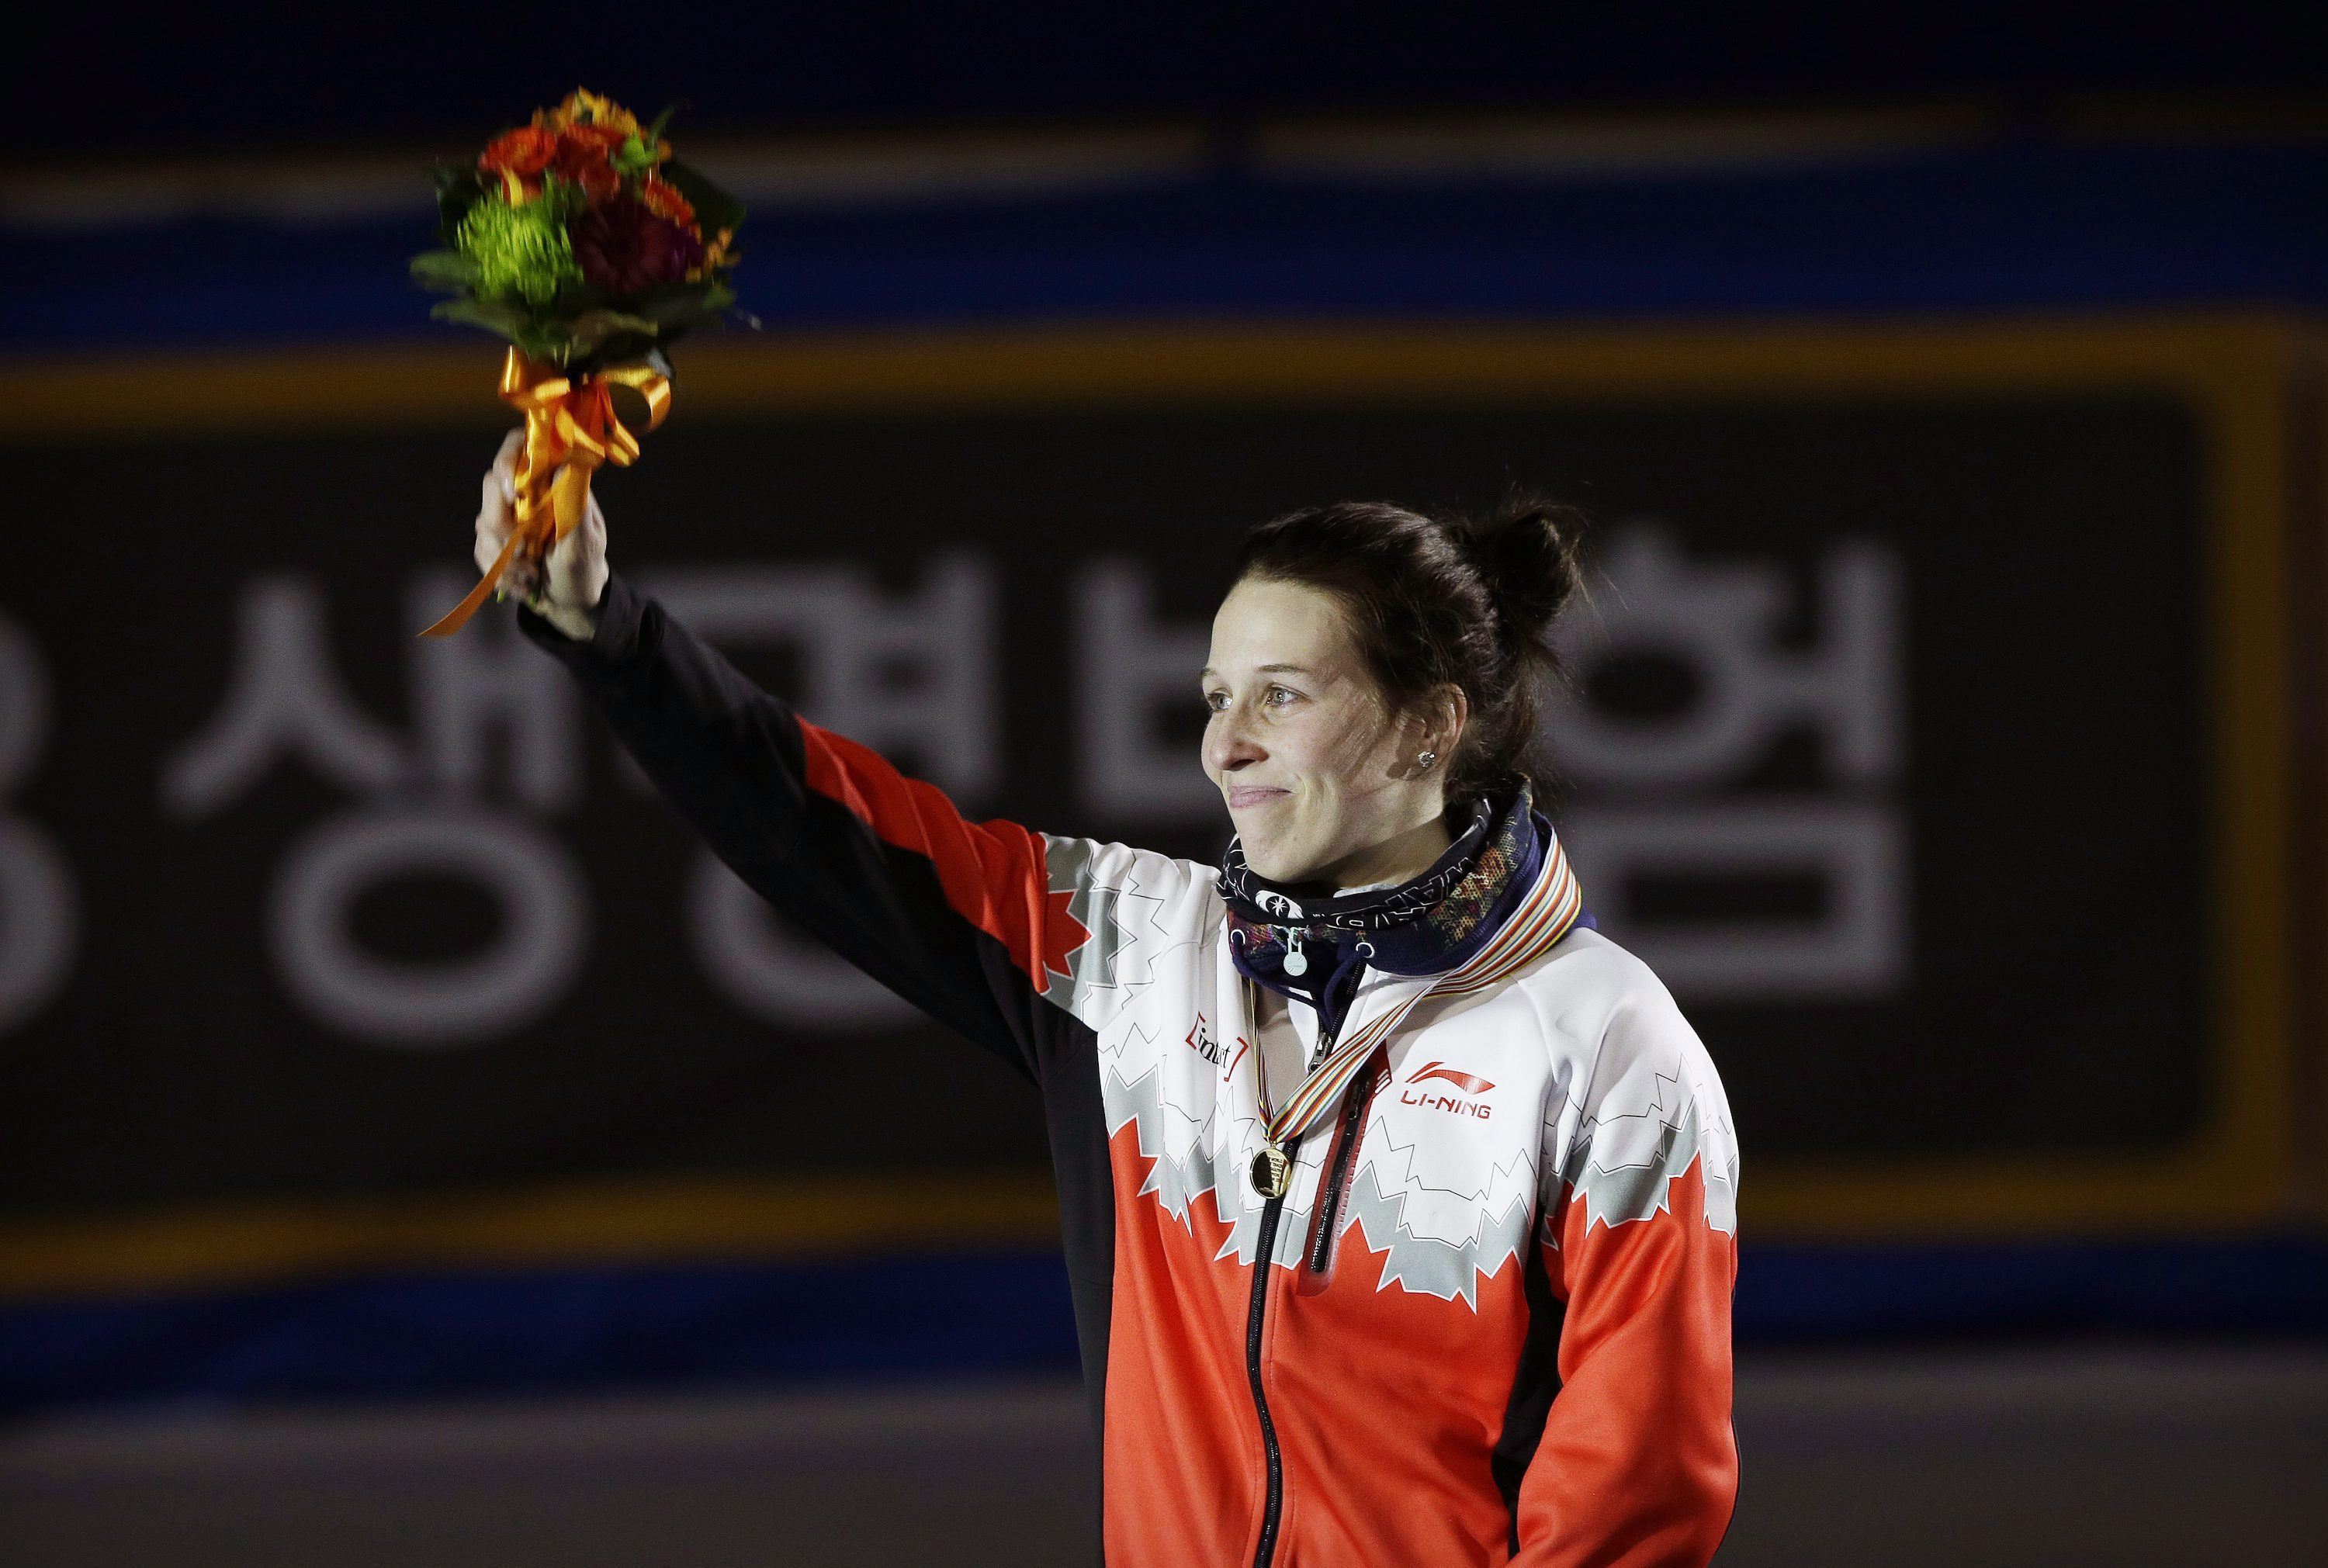 Gold medalist Marianne St-Gelais of Canada celebrates during the awards ceremony of the women's 1500 meter final at the ISU World Cup Short Track Speed Skating in Seoul, South Korea, Saturday, March 12, 2016. (AP Photo/Ahn Young-joon)